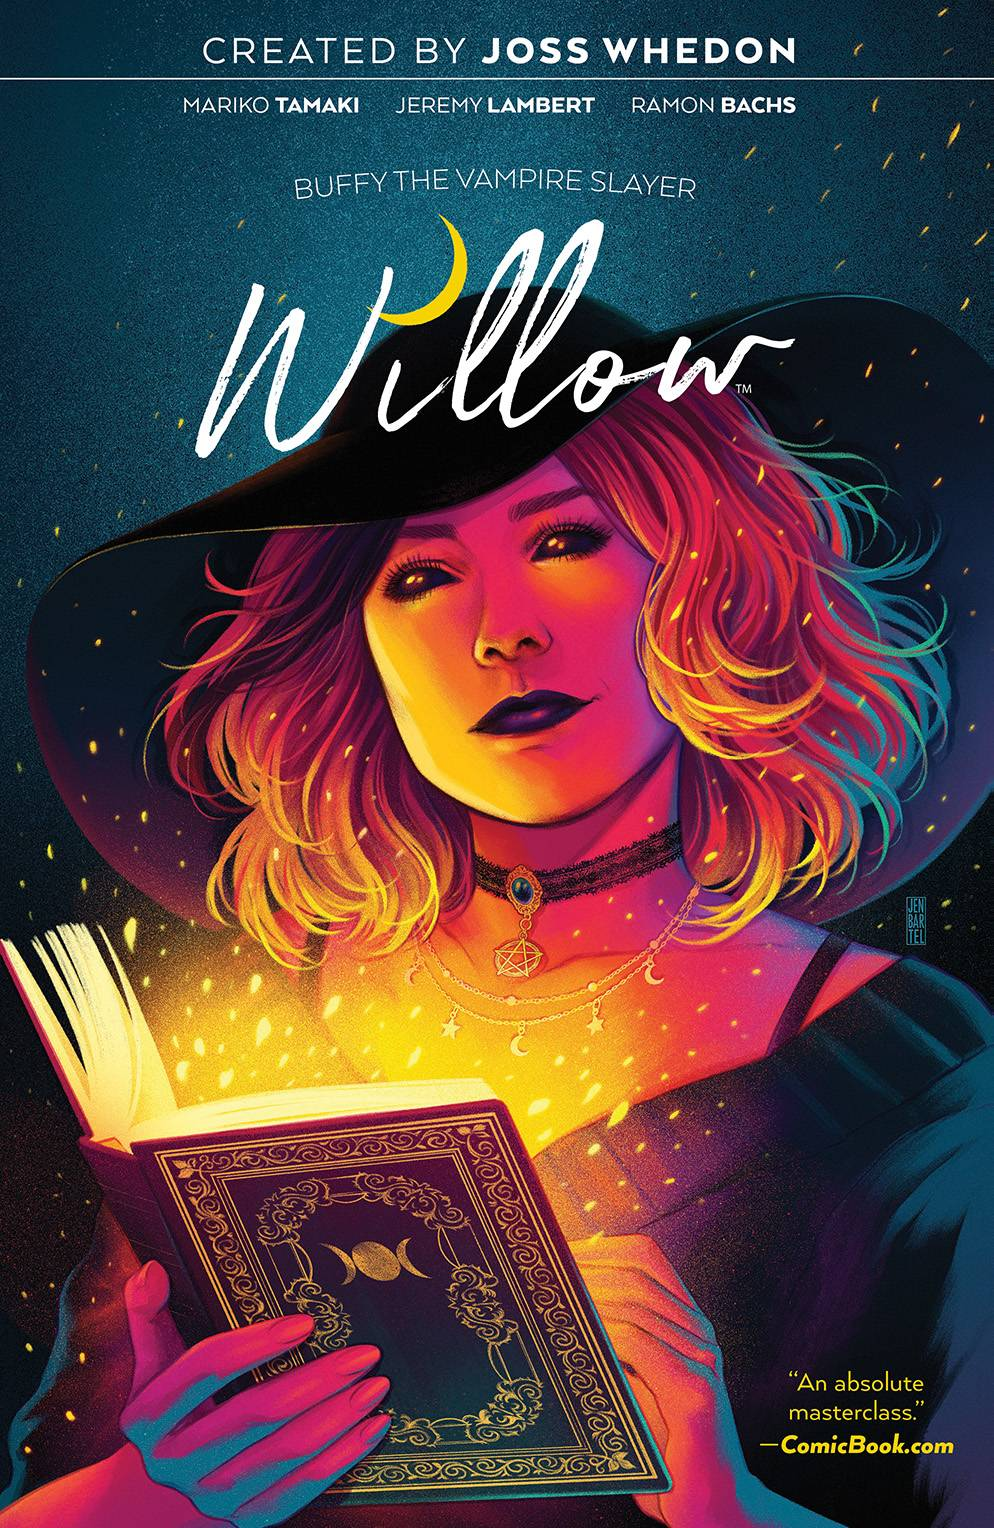 BUFFY THE VAMPIRE SLAYER WILLOW TP